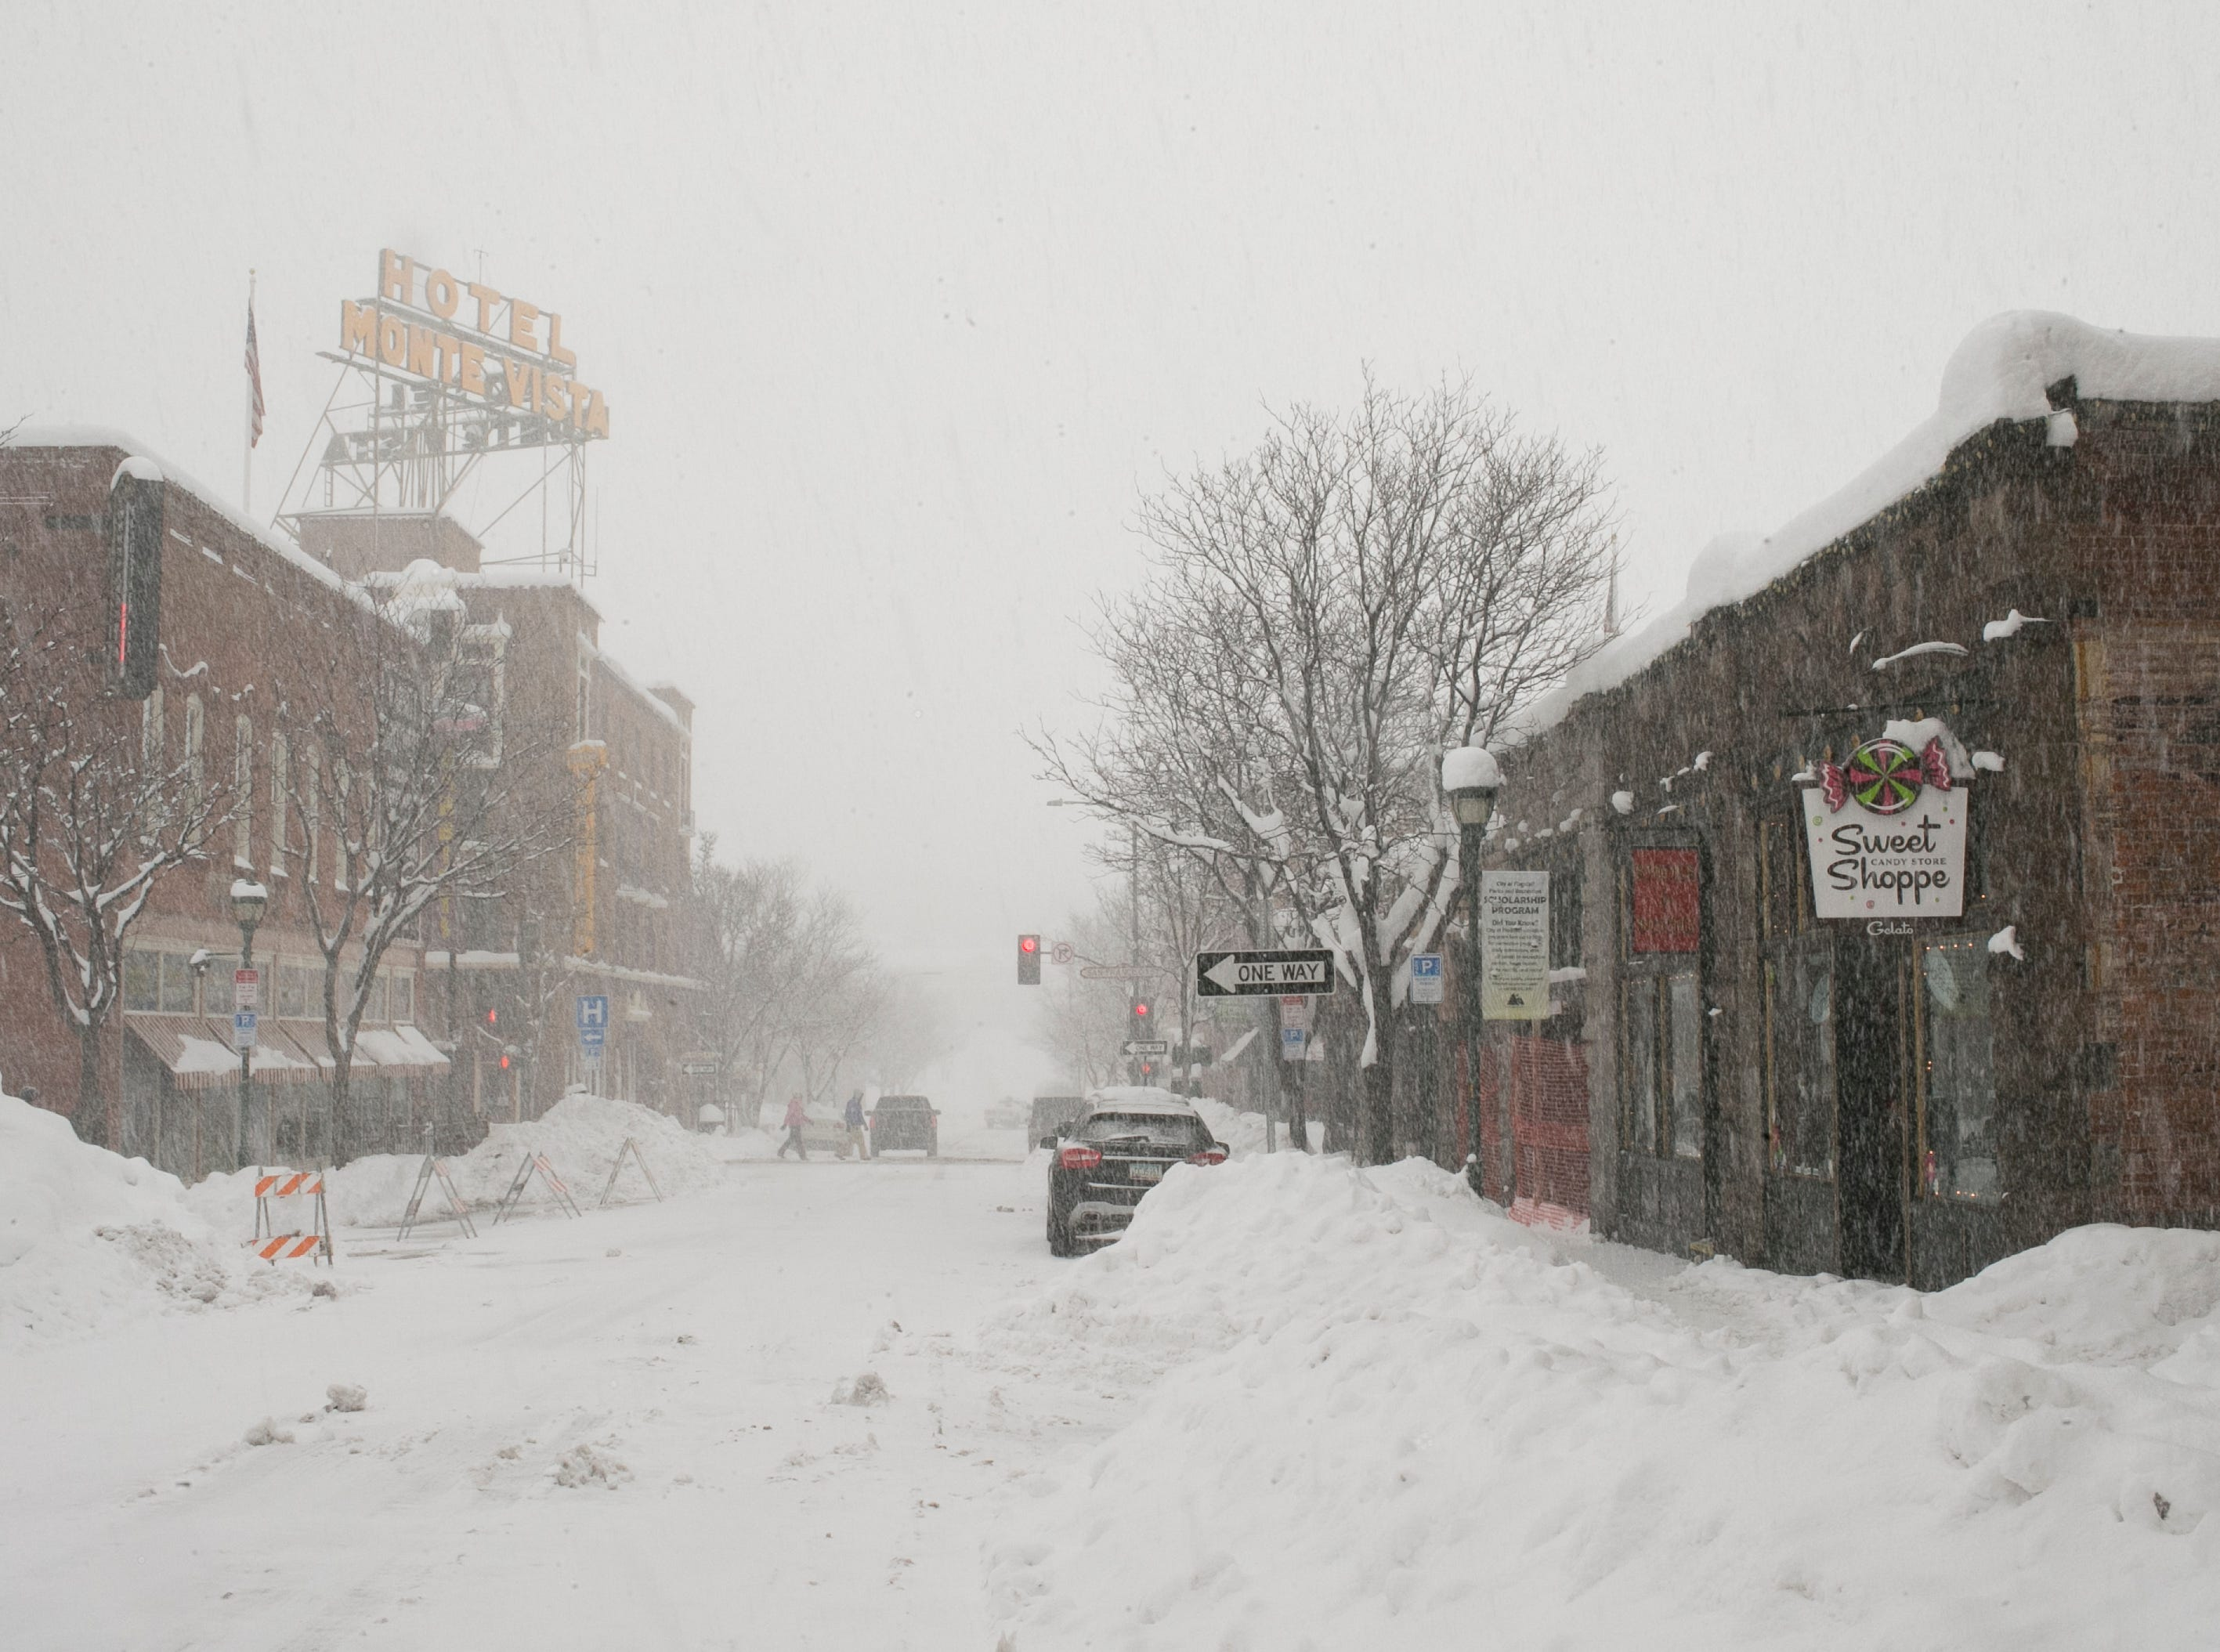 Snow blankets downtown Flagstaff the morning after a storm on Feb. 22, 2019.